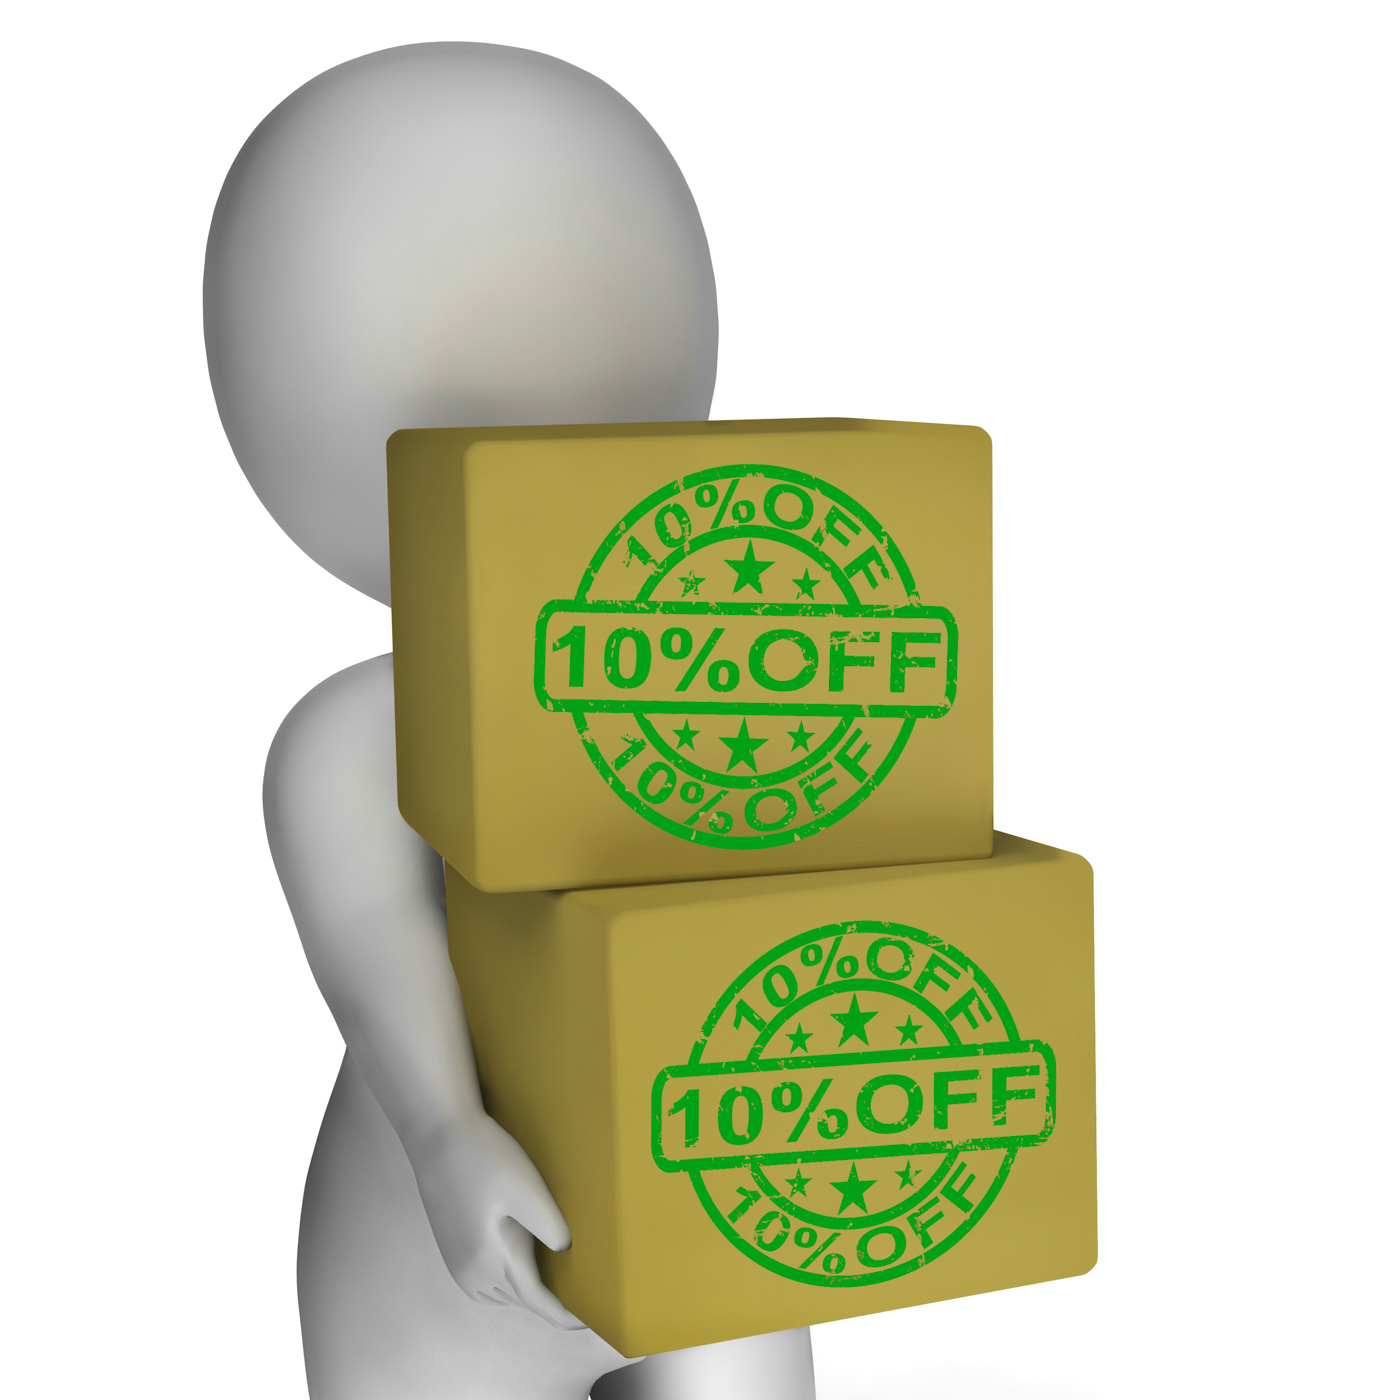 Ten percent off boxes show 10 lower prices photo